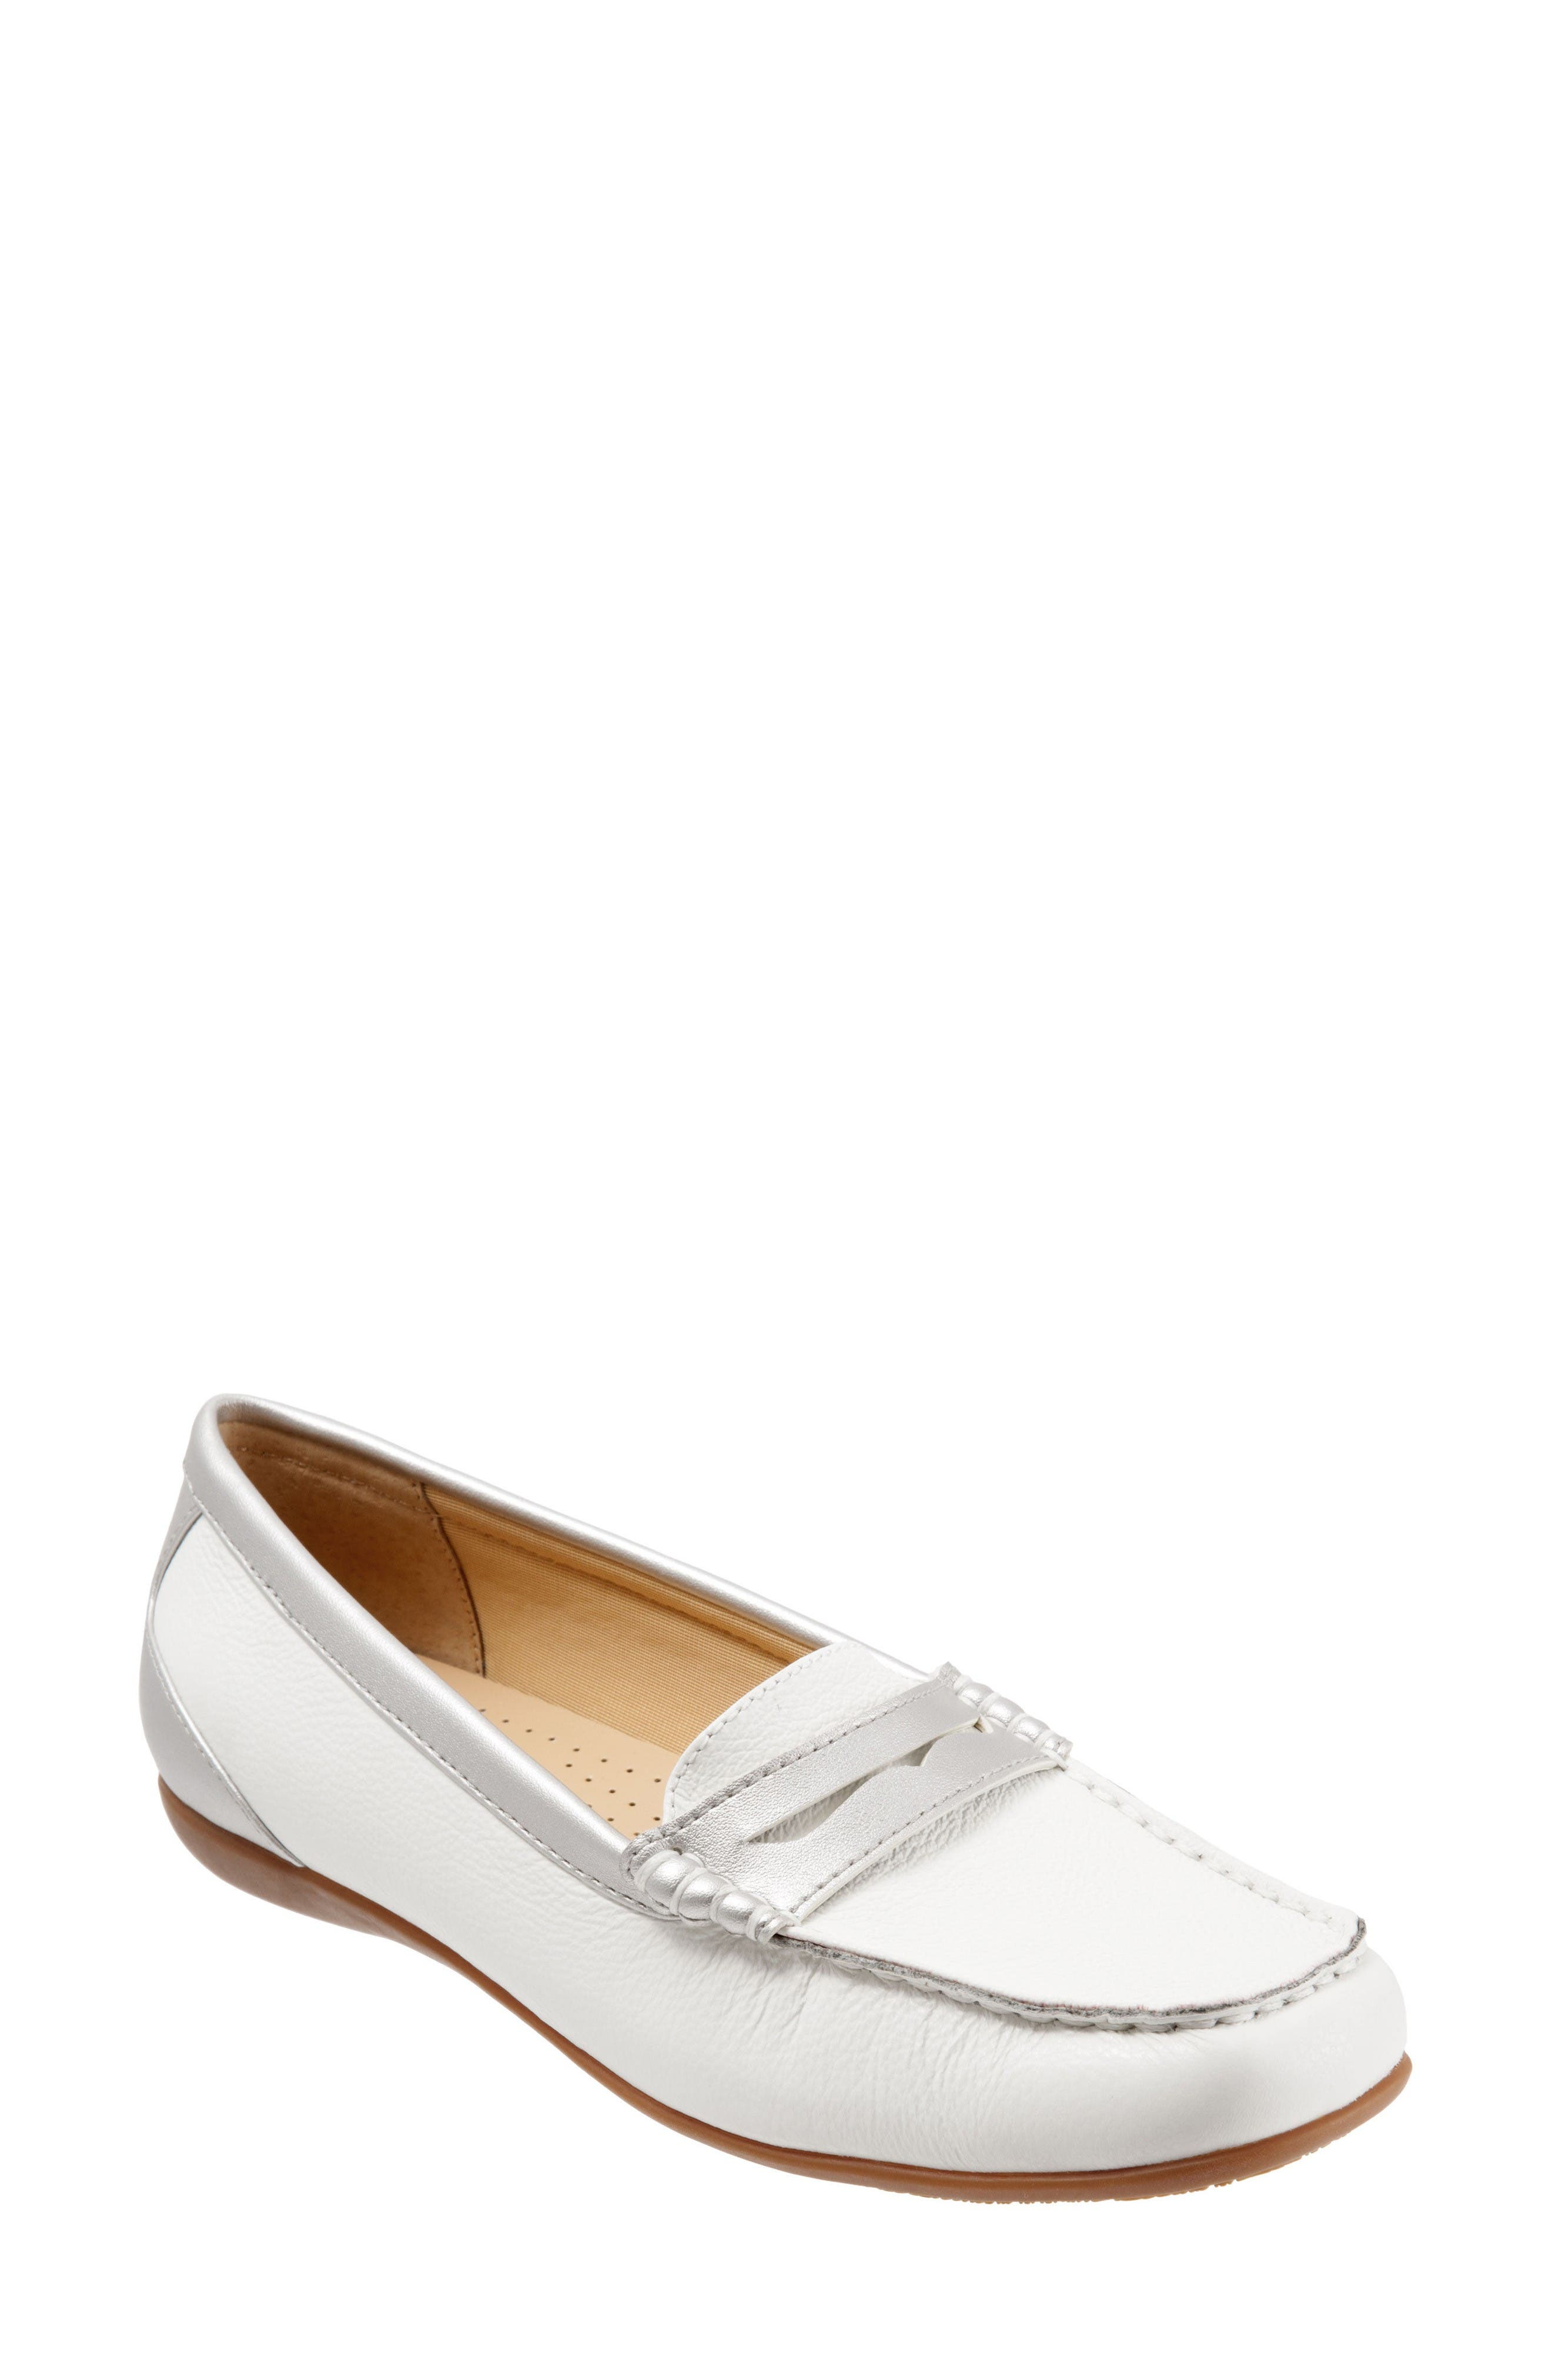 Trotters 'Staci' Penny Loafer (Women)